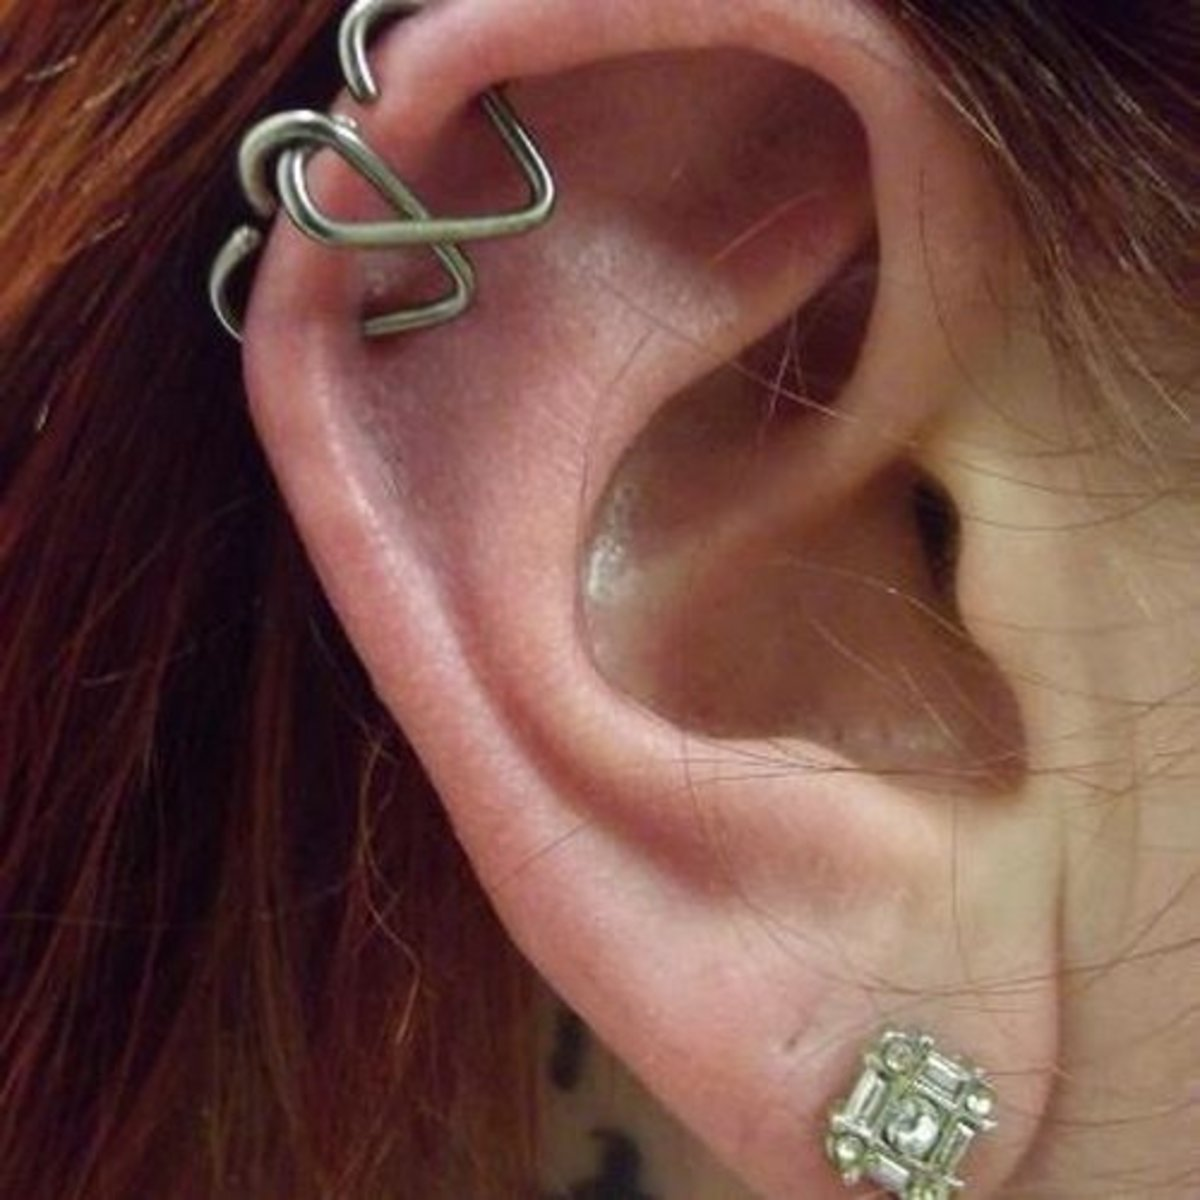 Double helix with hearts.